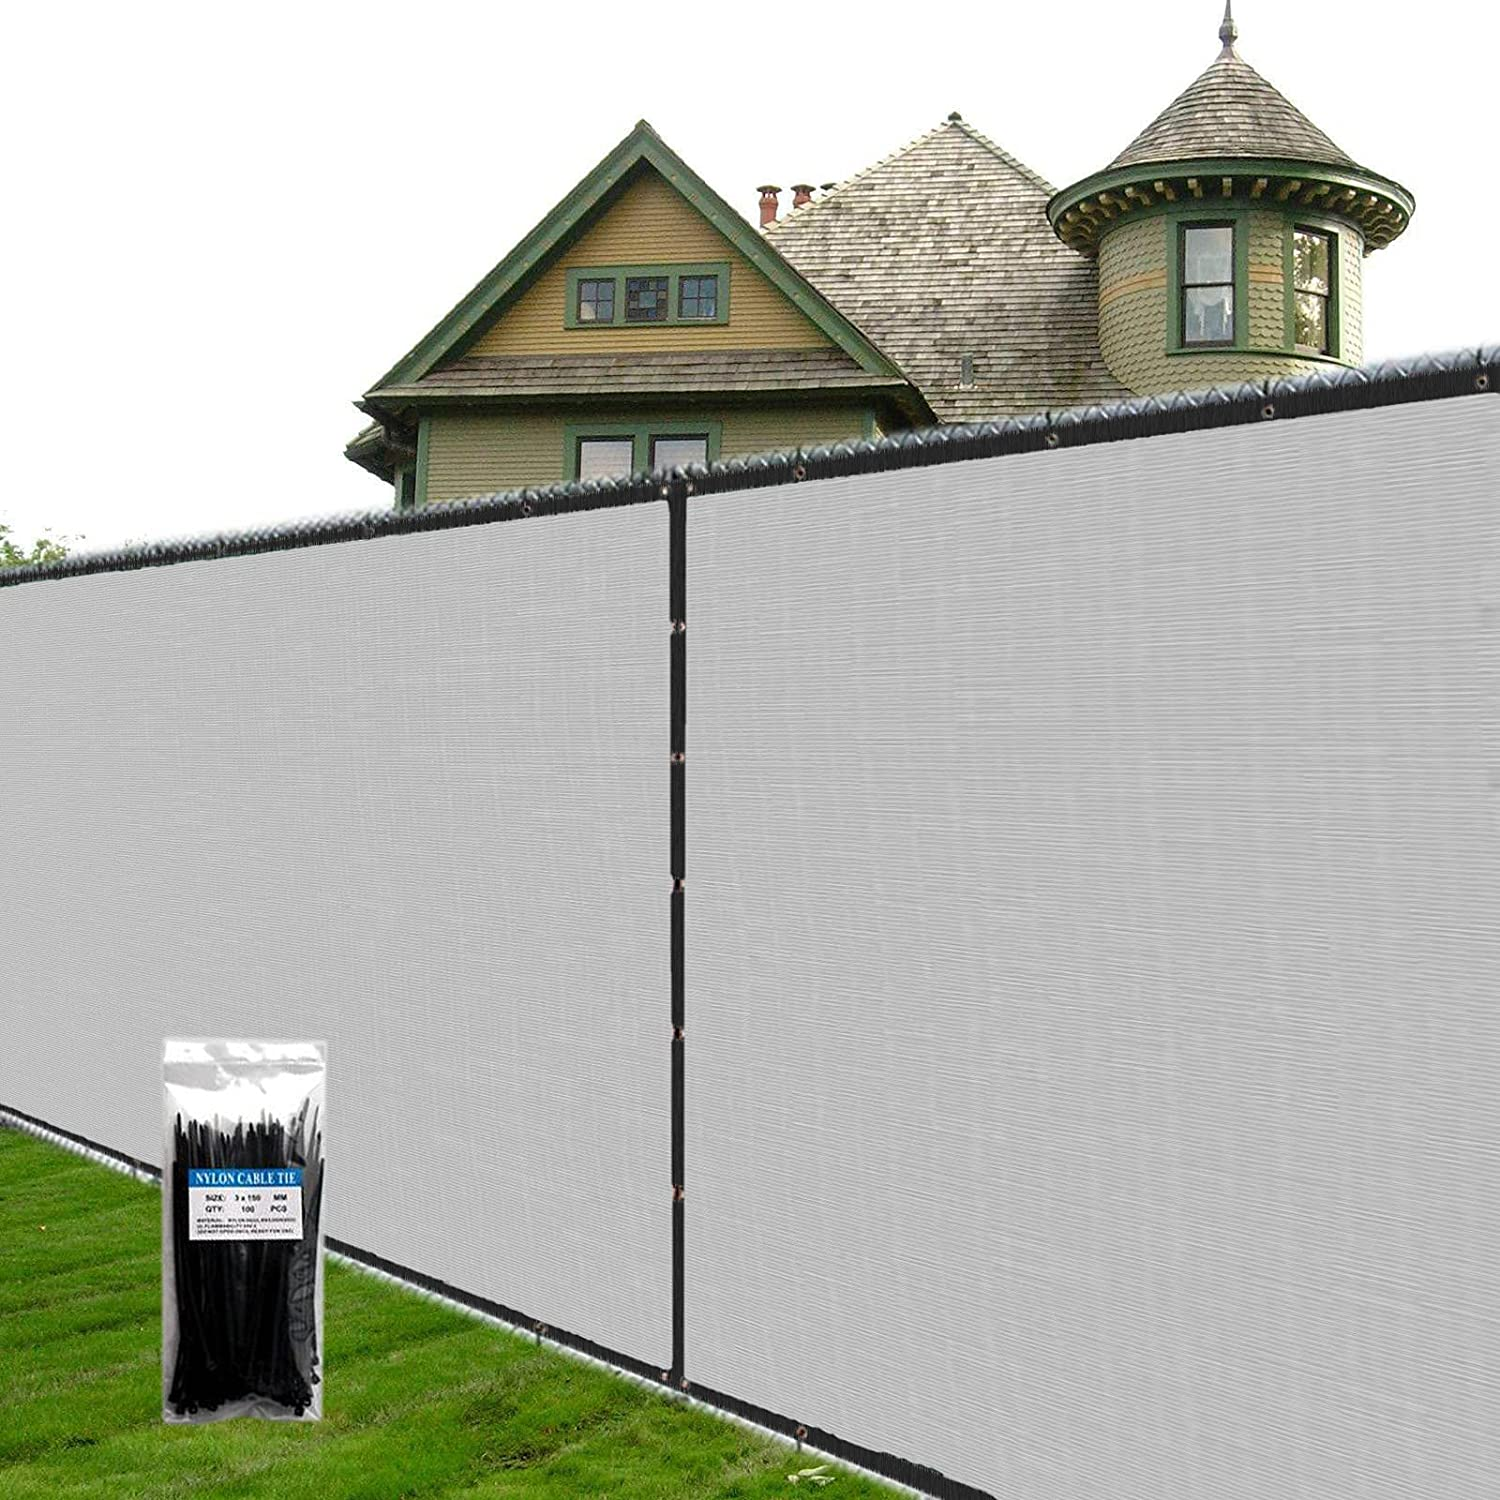 SUNNY MOOD 4' x 181' Custom Be super welcome Privacy Gray Fence Luxury goods Screen Winds Size